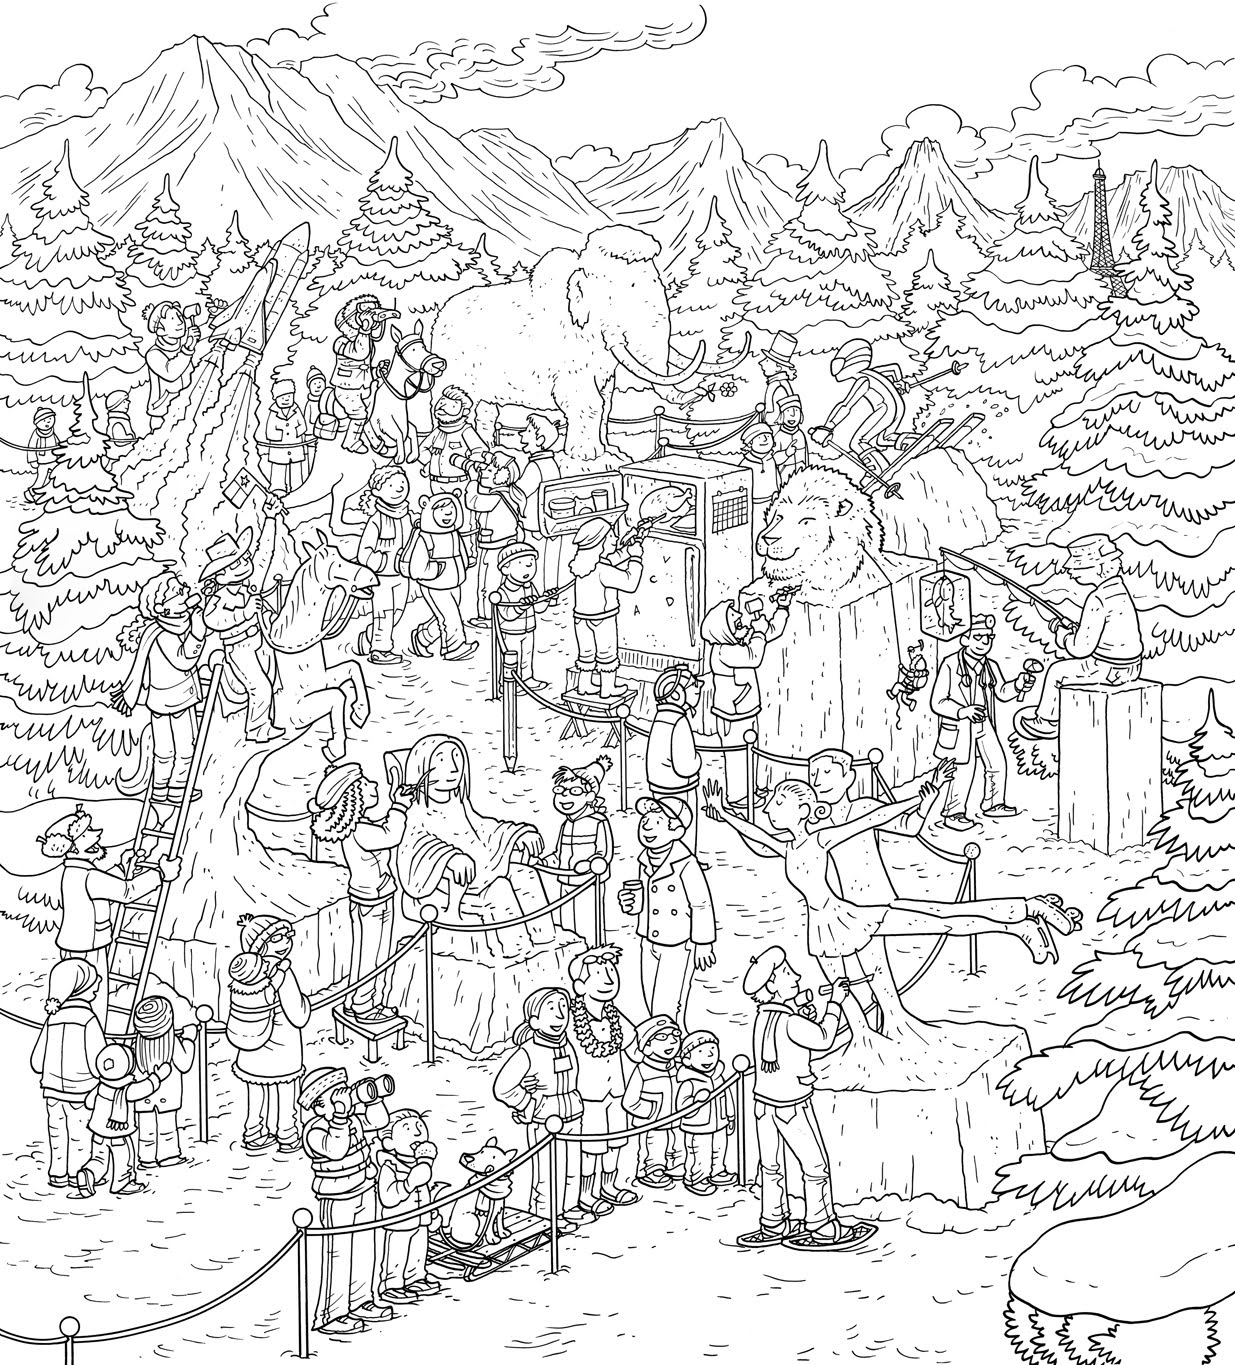 coloring page hard 10 difficult owl coloring page for adults page coloring hard